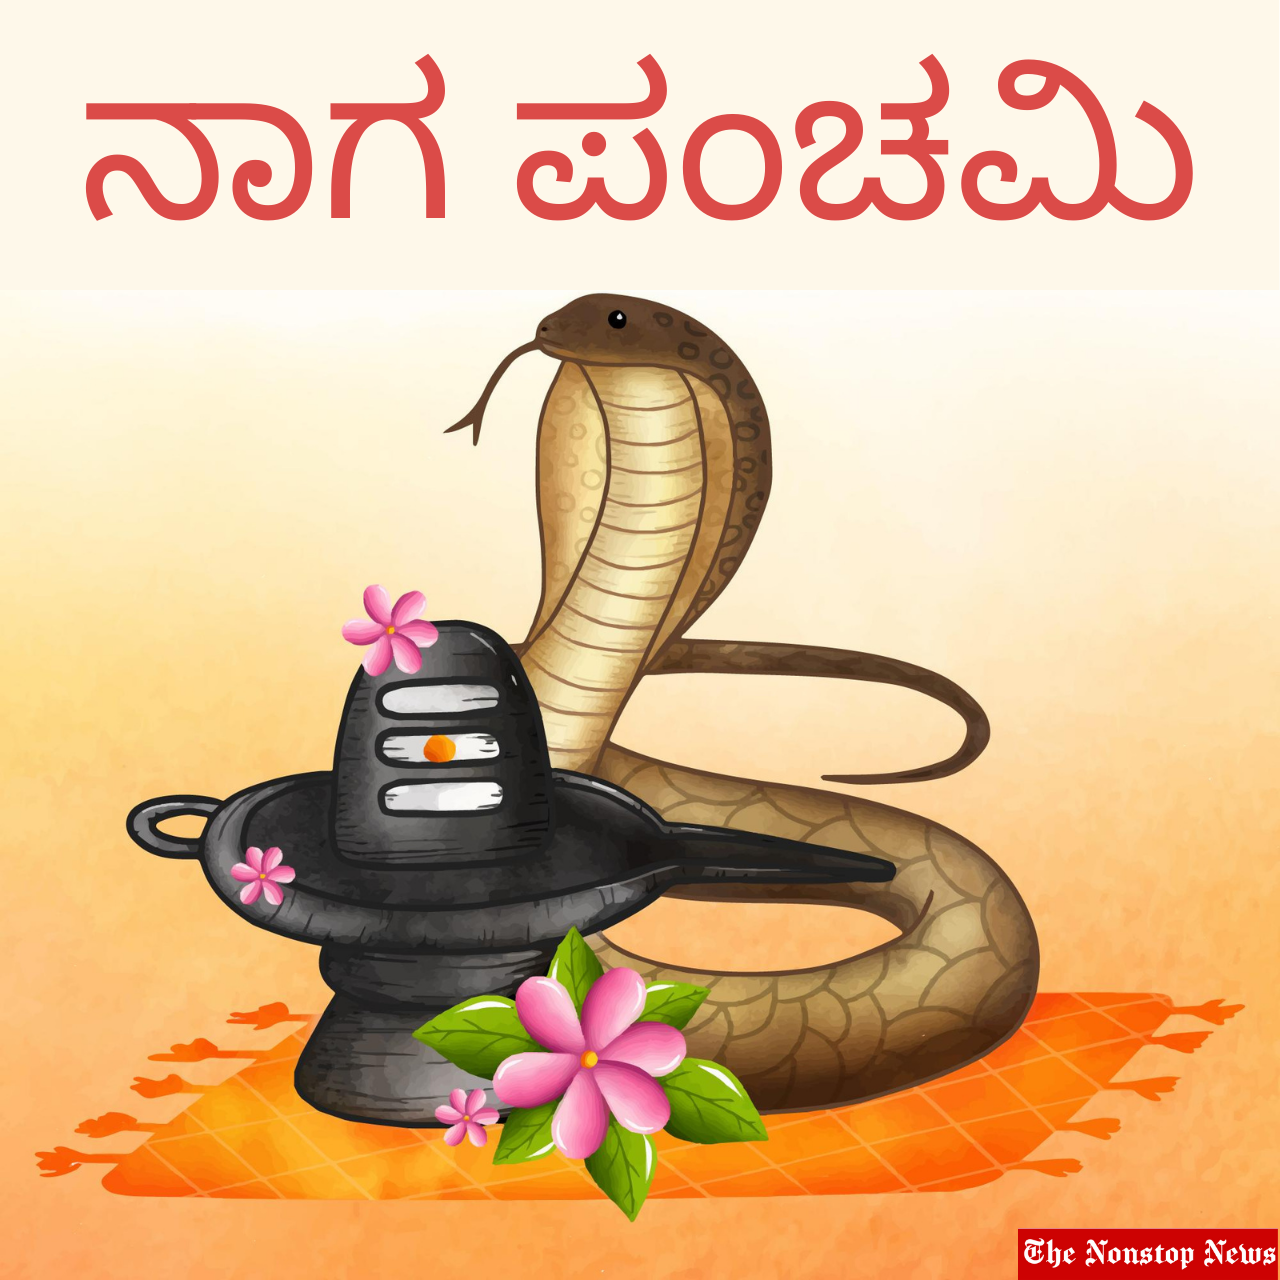 Happy Nag Panchami 2021 Telugu and Kannada Wishes: Messages, Greetings, Wallpaper, HD Images, Quotes, Poster, and Stickers to greet your relatives in your local language